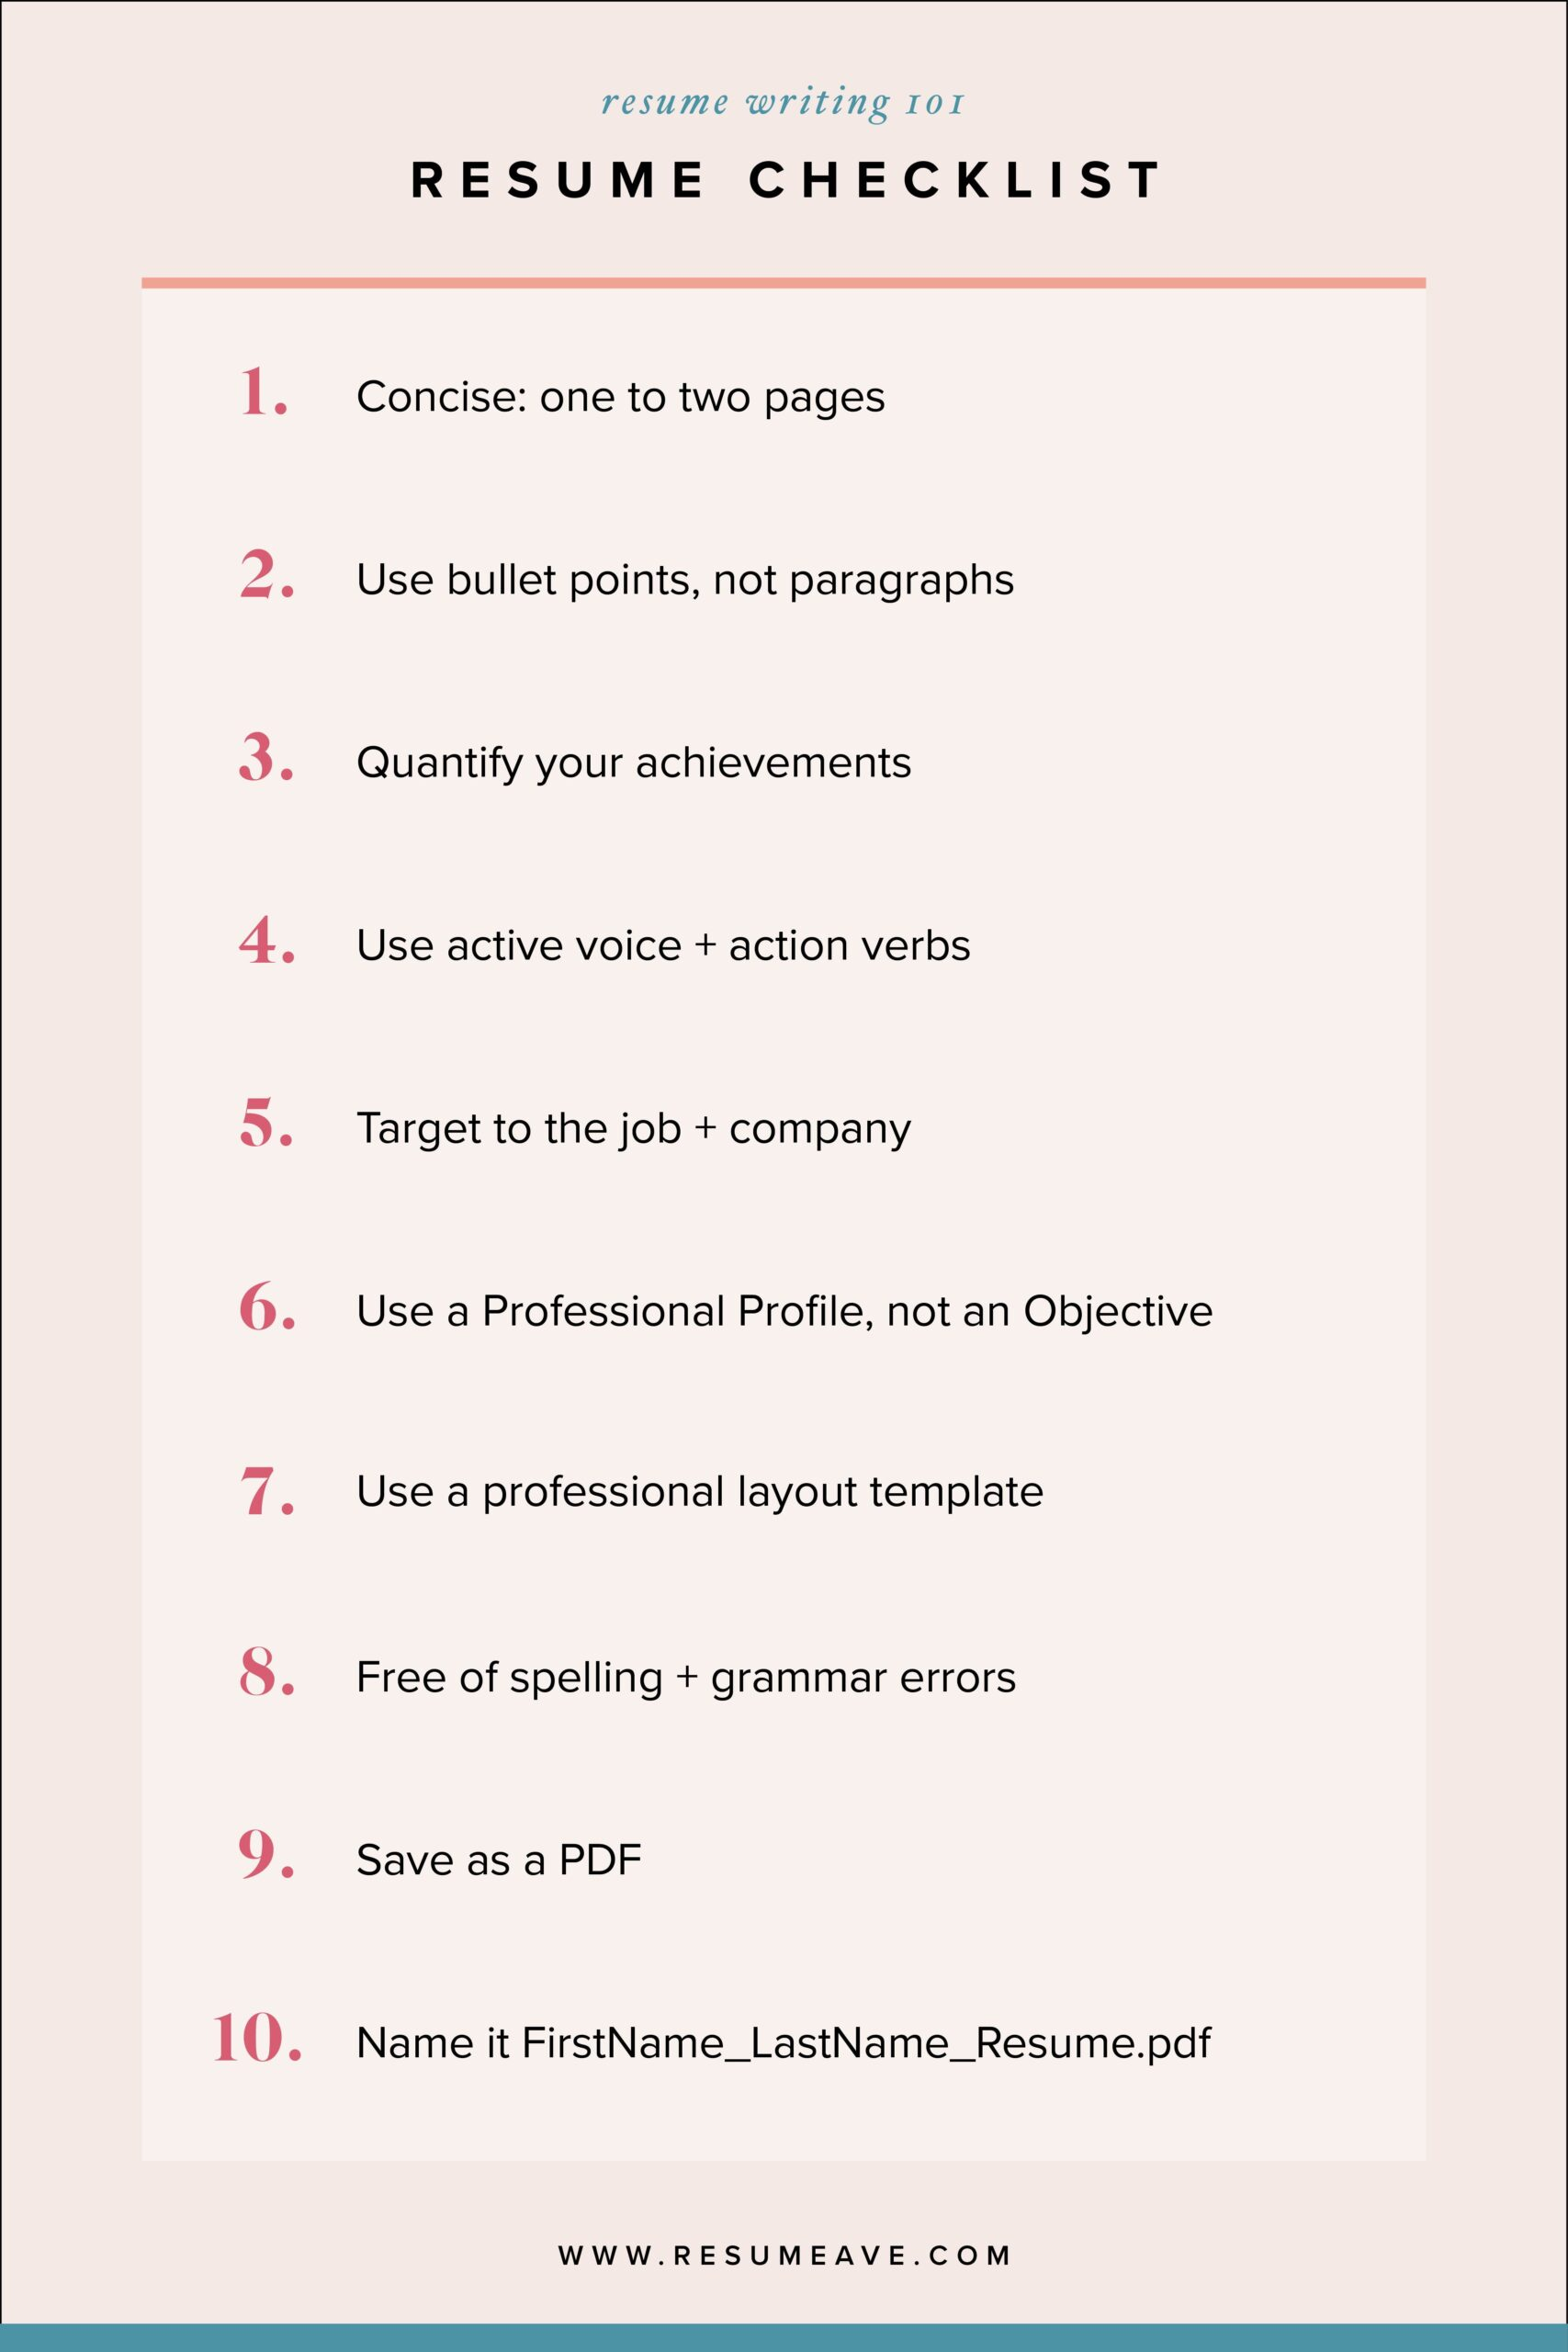 top resume writing tips checklist for indeed review entry level mental health prep Resume Checklist For Resume Writing